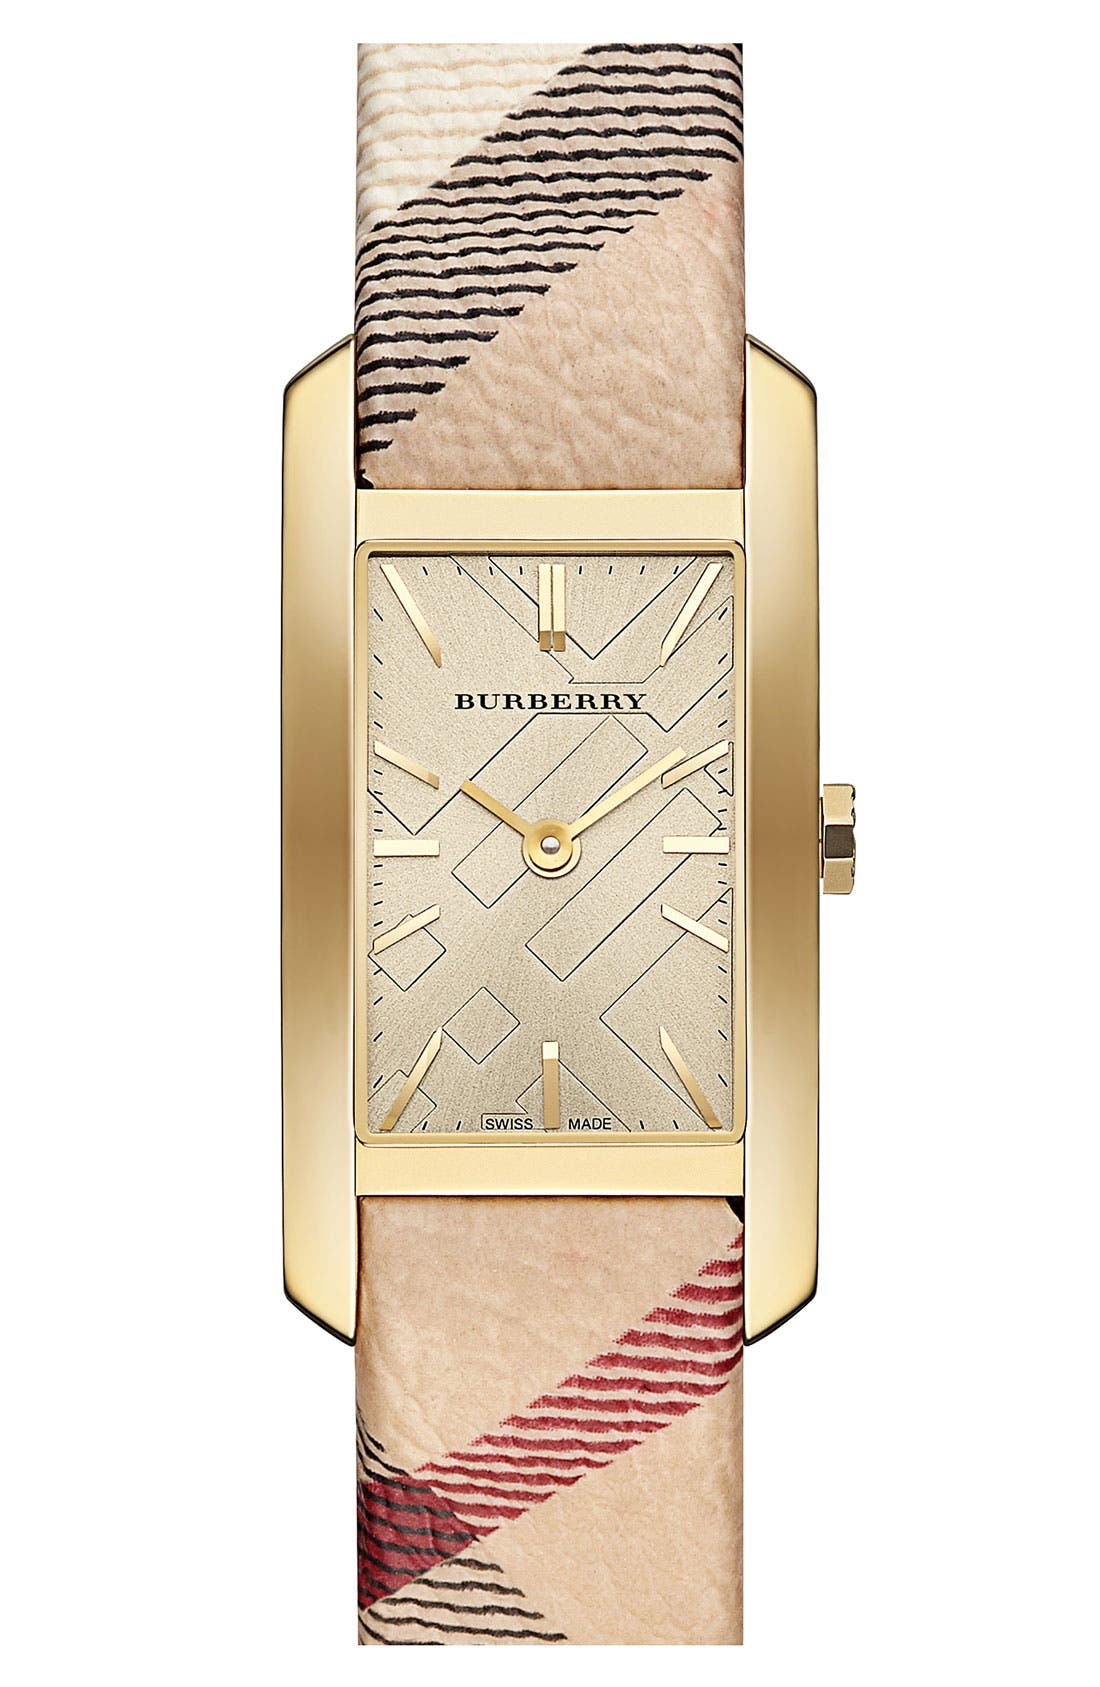 Main Image - Burberry Rectangular Check Strap Watch, 20mm x 26mm